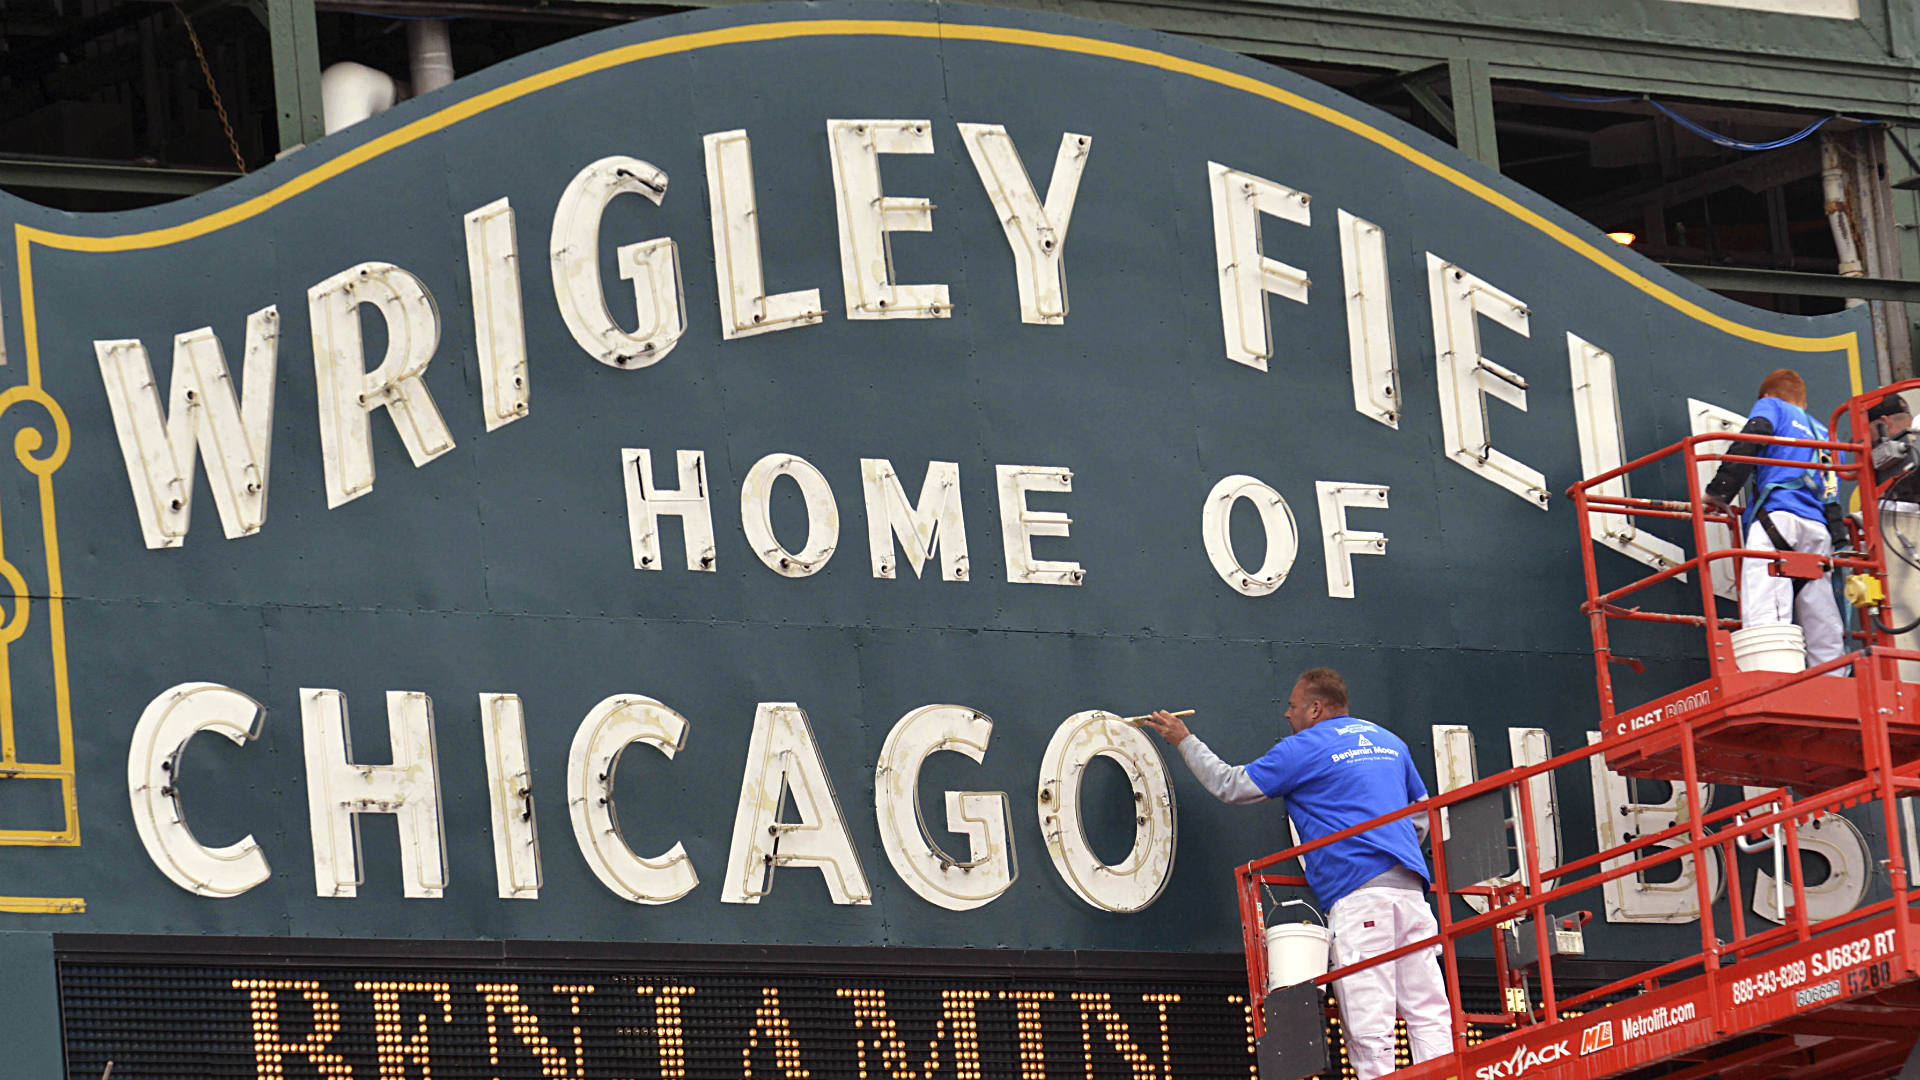 Cubs: 'Making Confines Friendlier' by keeping fans at bay